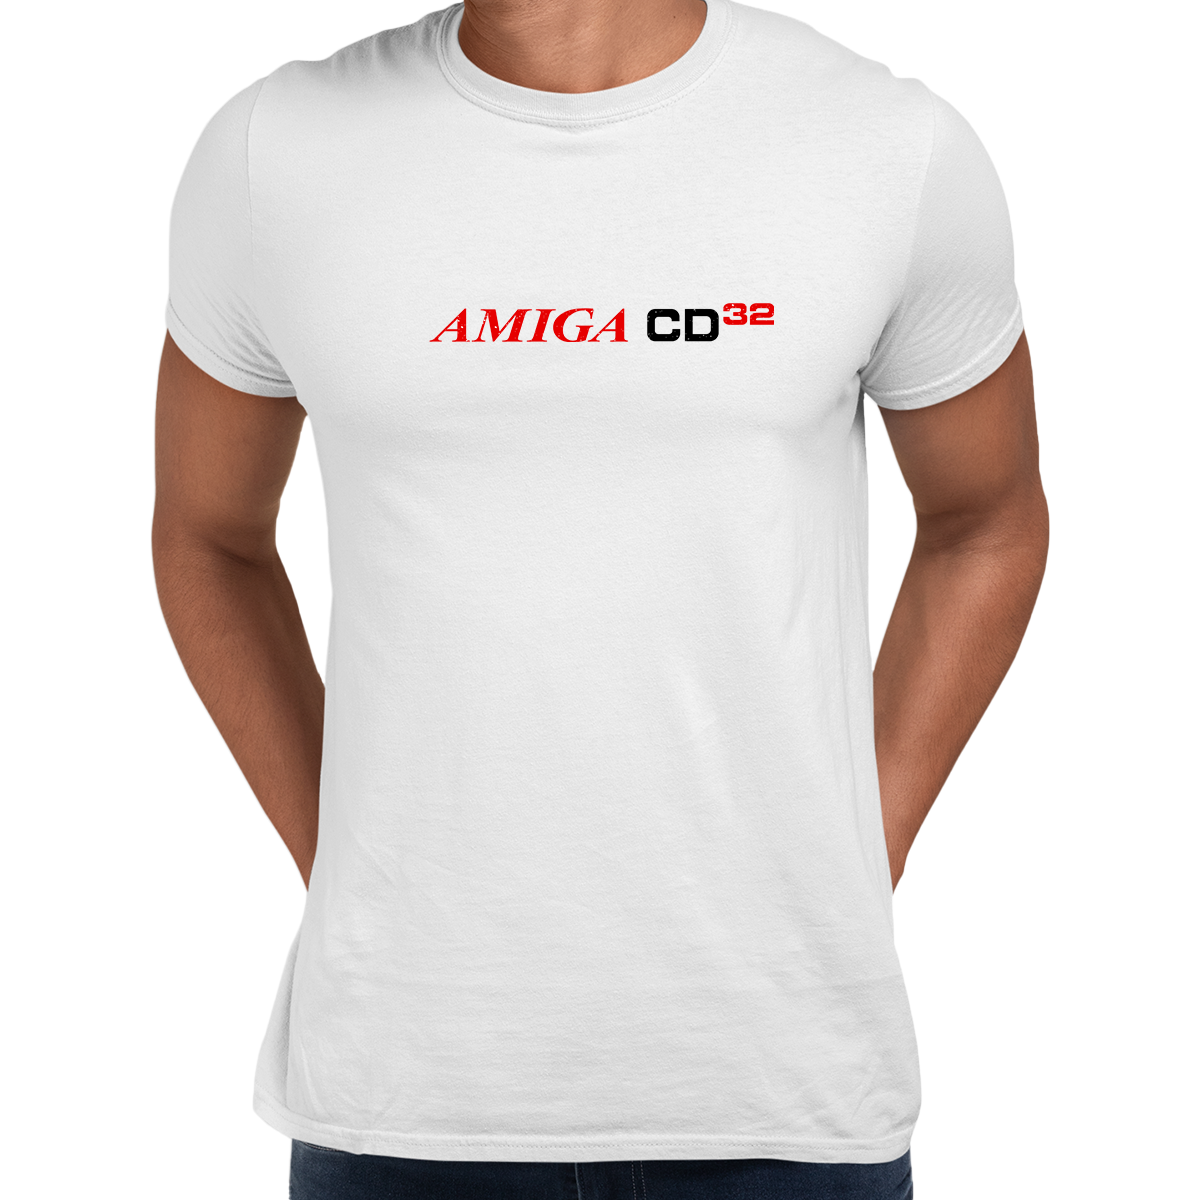 Amiga CD 32 Retro Game Console Arcade White Unisex T-Shirts OLD SKOOL Free Delivery